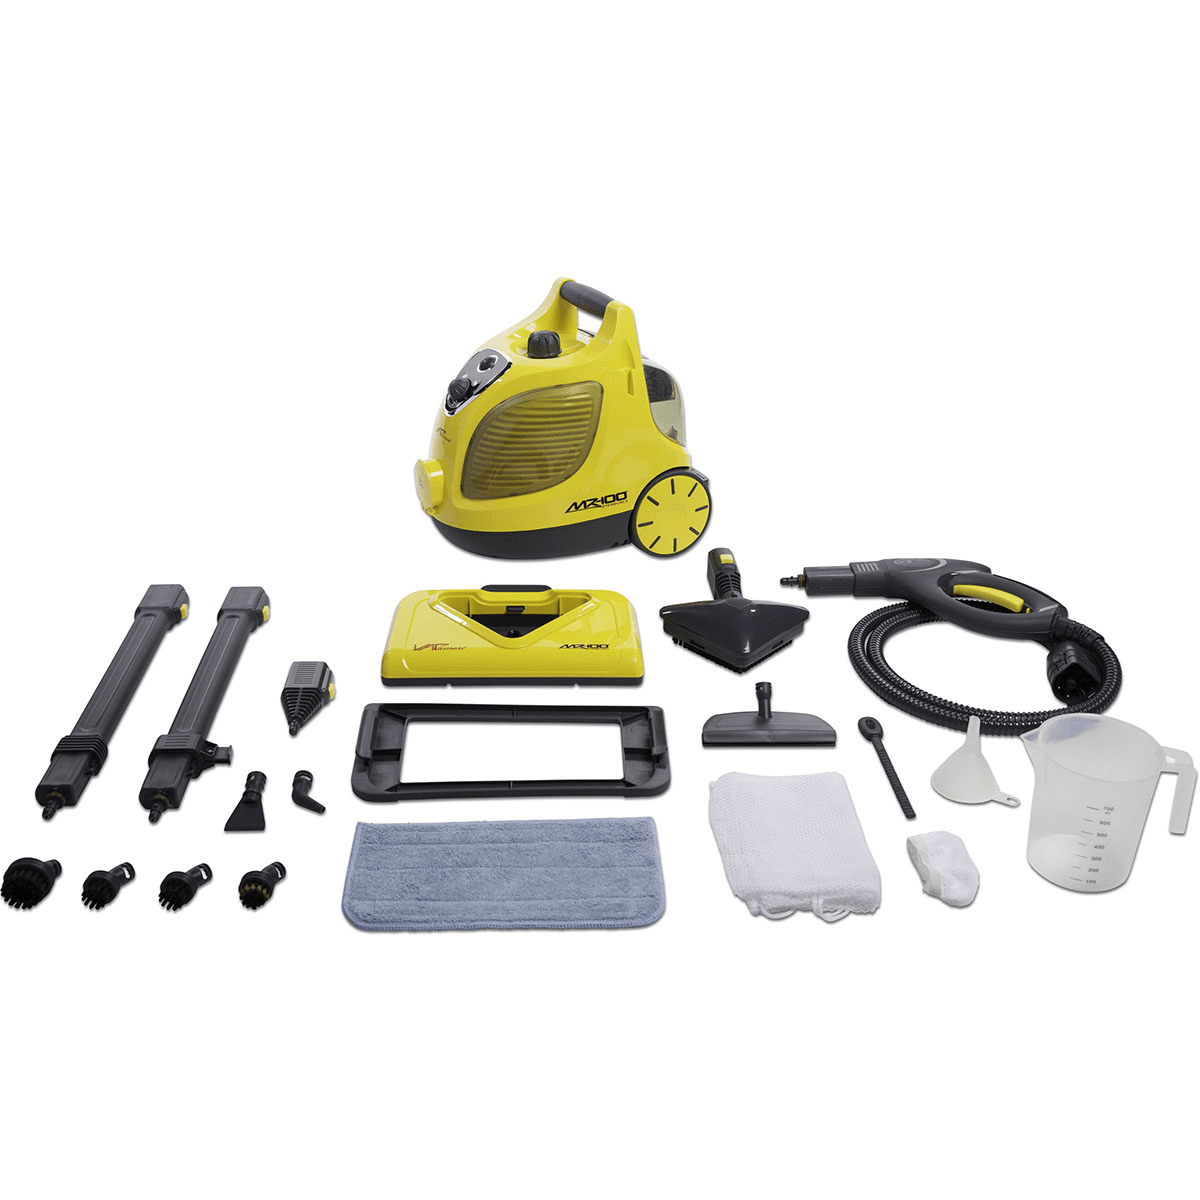 cleaning attachments and accessories